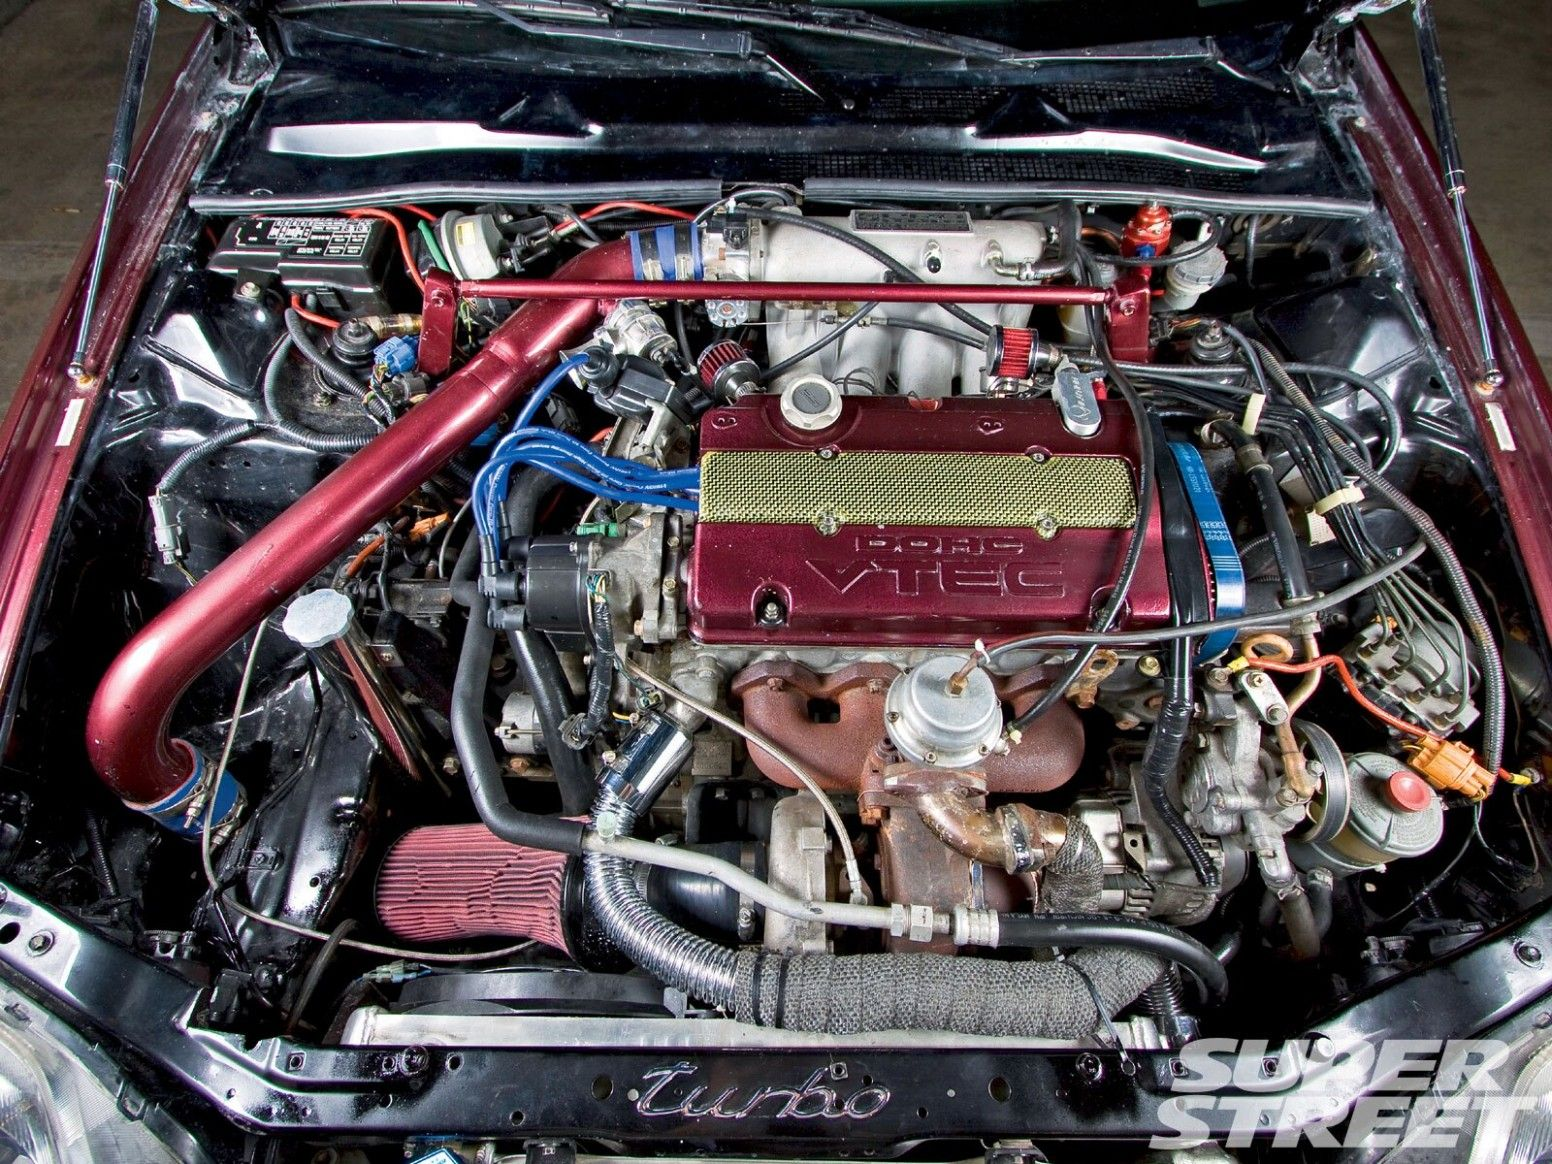 Honda Prelude Engine Bay Diagram Honda Prelude Engine Bay Diagram